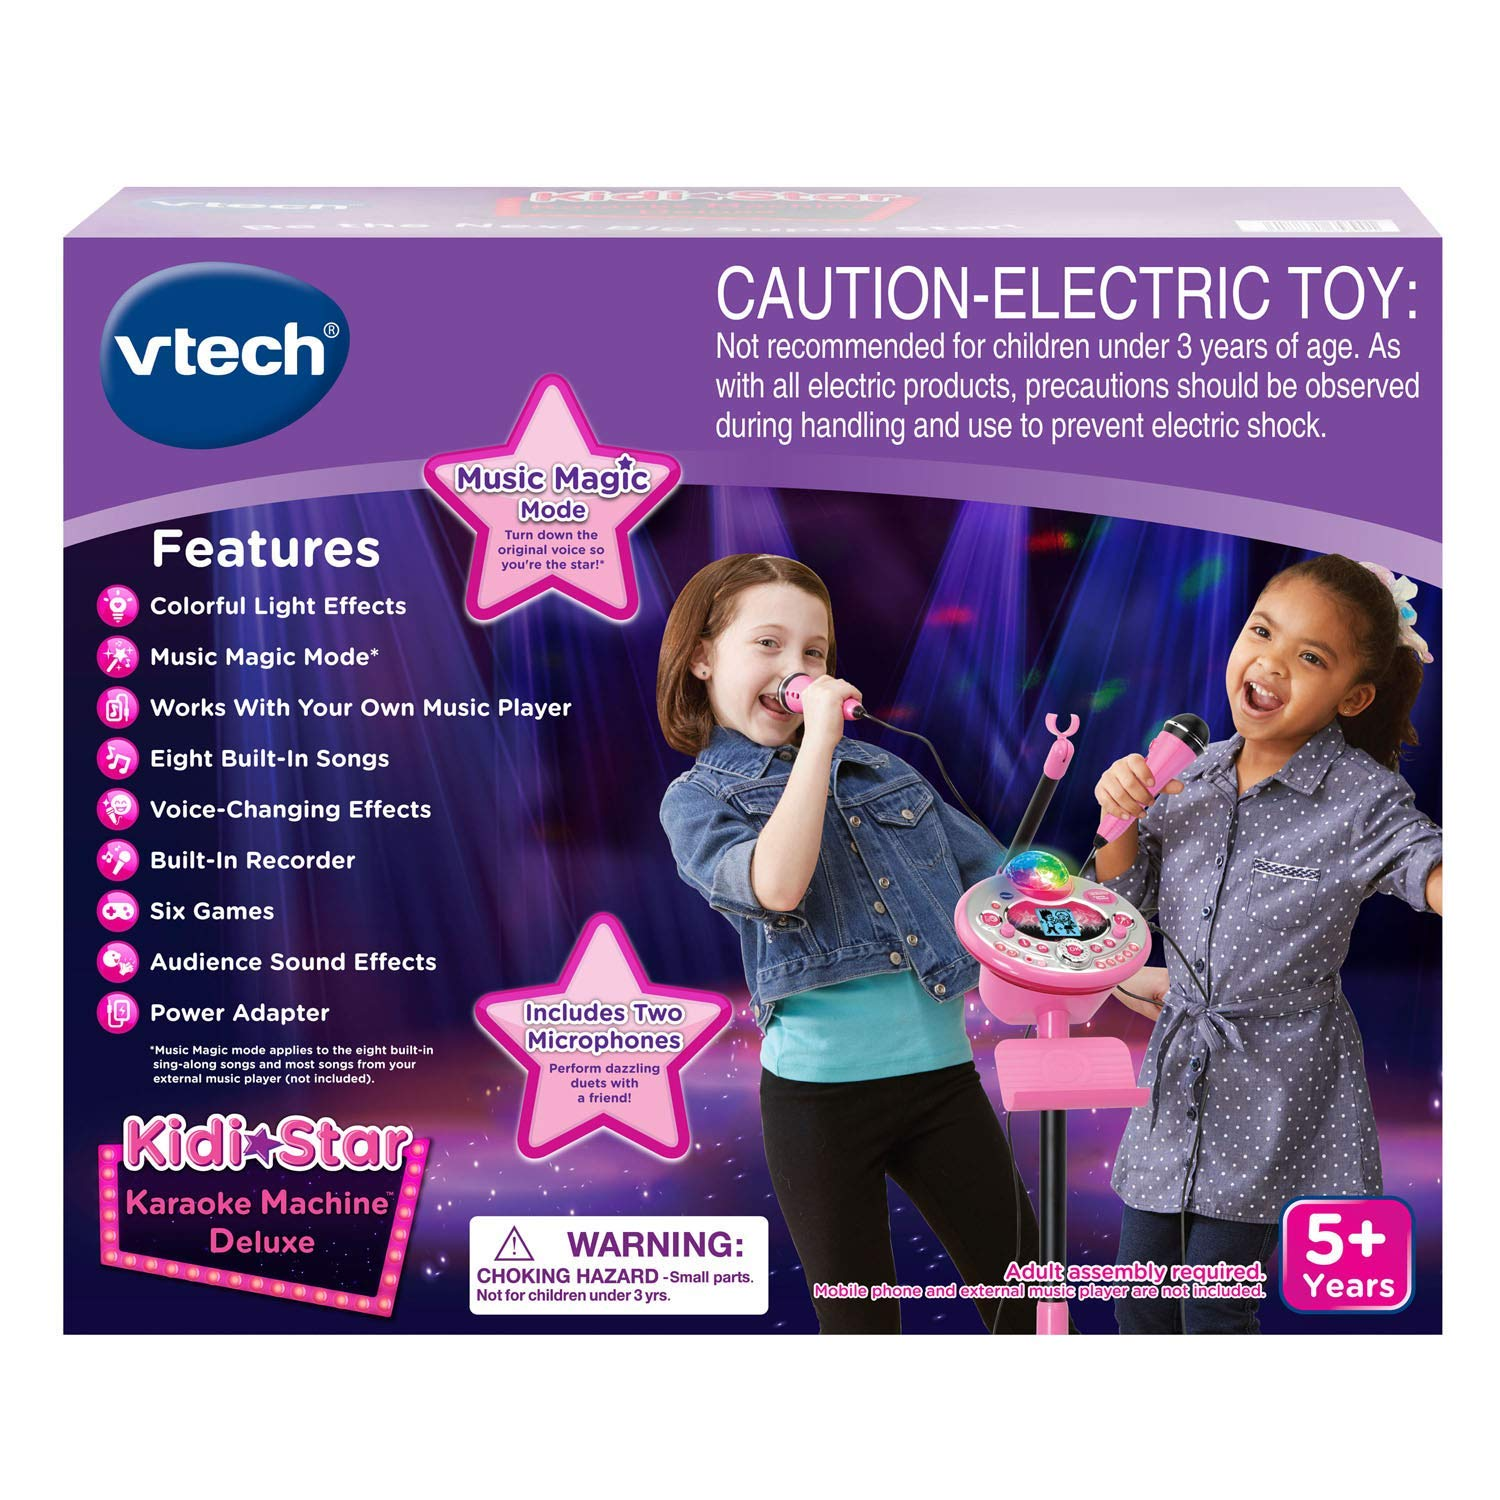 VTech Kidi Star Karaoke System 2 Mics with Mic Stand & AC Adapter, Pink (Renewed) by VTech (Image #7)